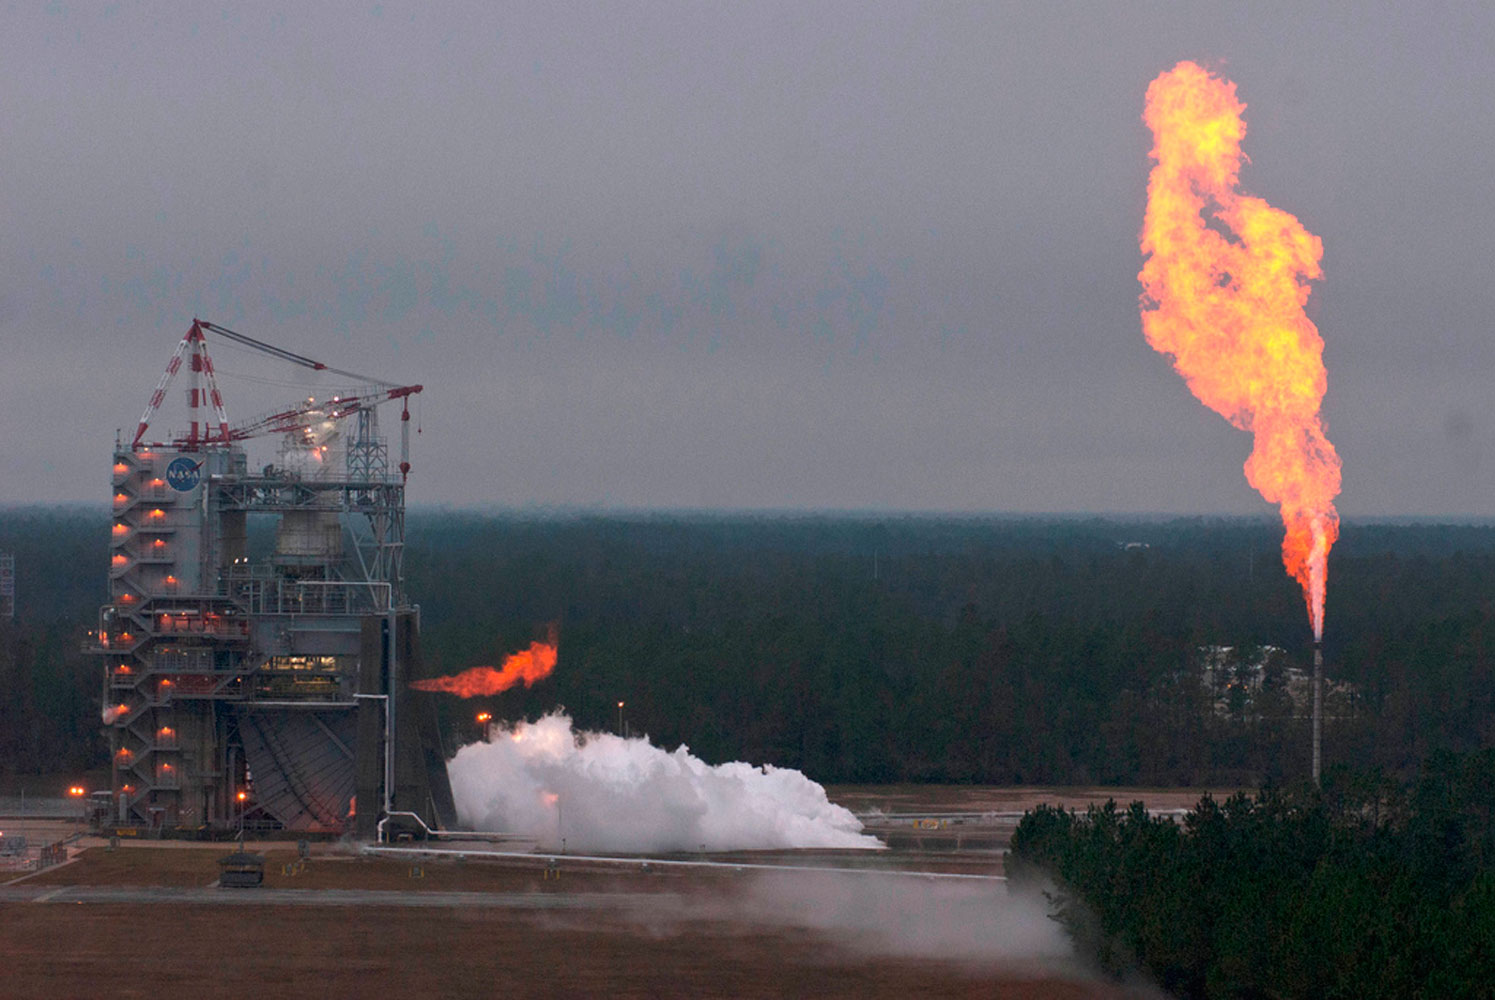 A version of the J-2X engine burns brightly during a 278-sec. hot fire test Nov. 27, 2012 at NASA's Stennis Space Center in Mississippi. The J-2X will power the upper stage of of the SLS.